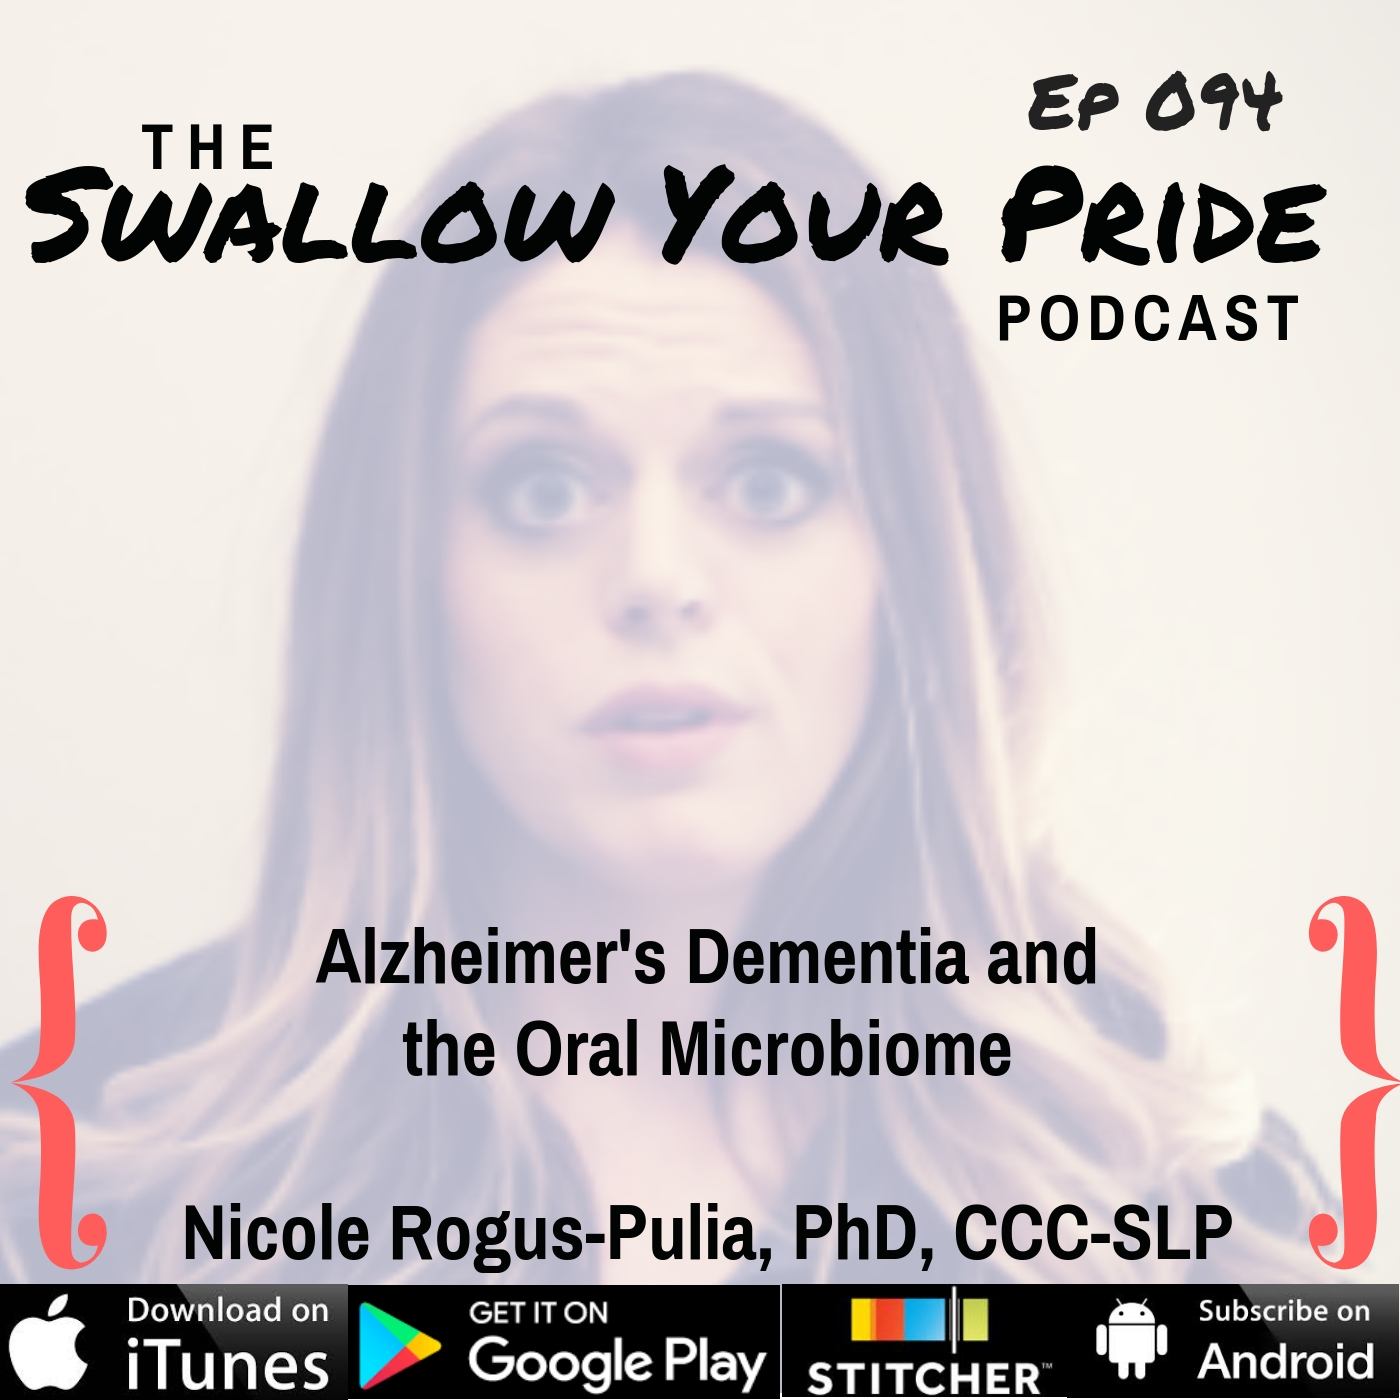 094 – Nicole Rogus-Pulia PhD, CCC-SLP – Alzheimer's Dementia and the Oral Microbiome